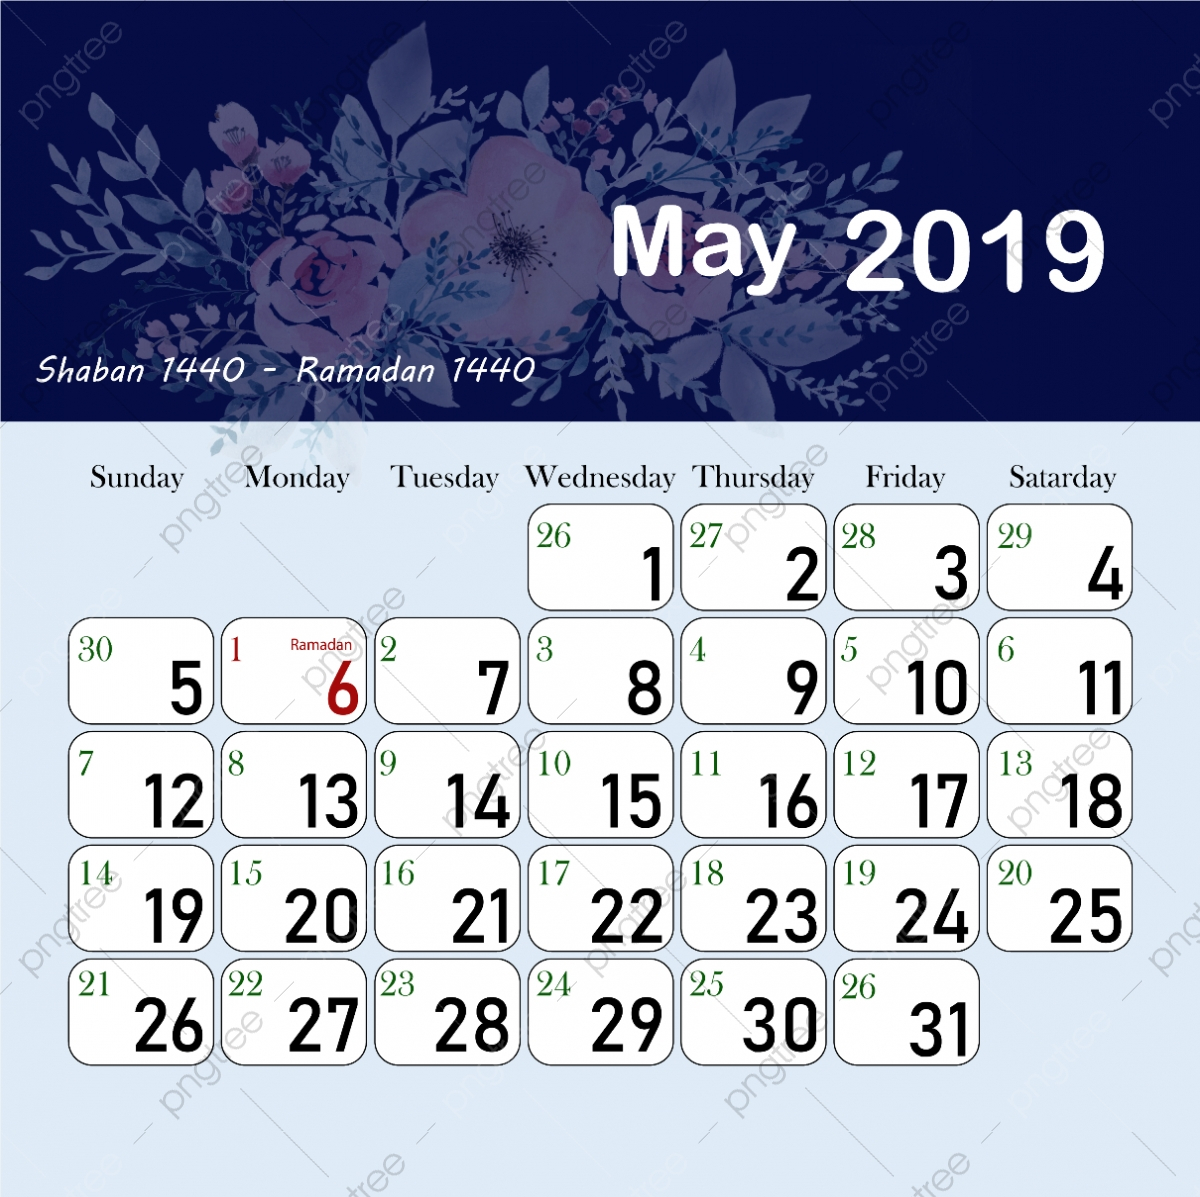 Islamic Hijri Calendar May 1440 2019, May Clipart, 1440